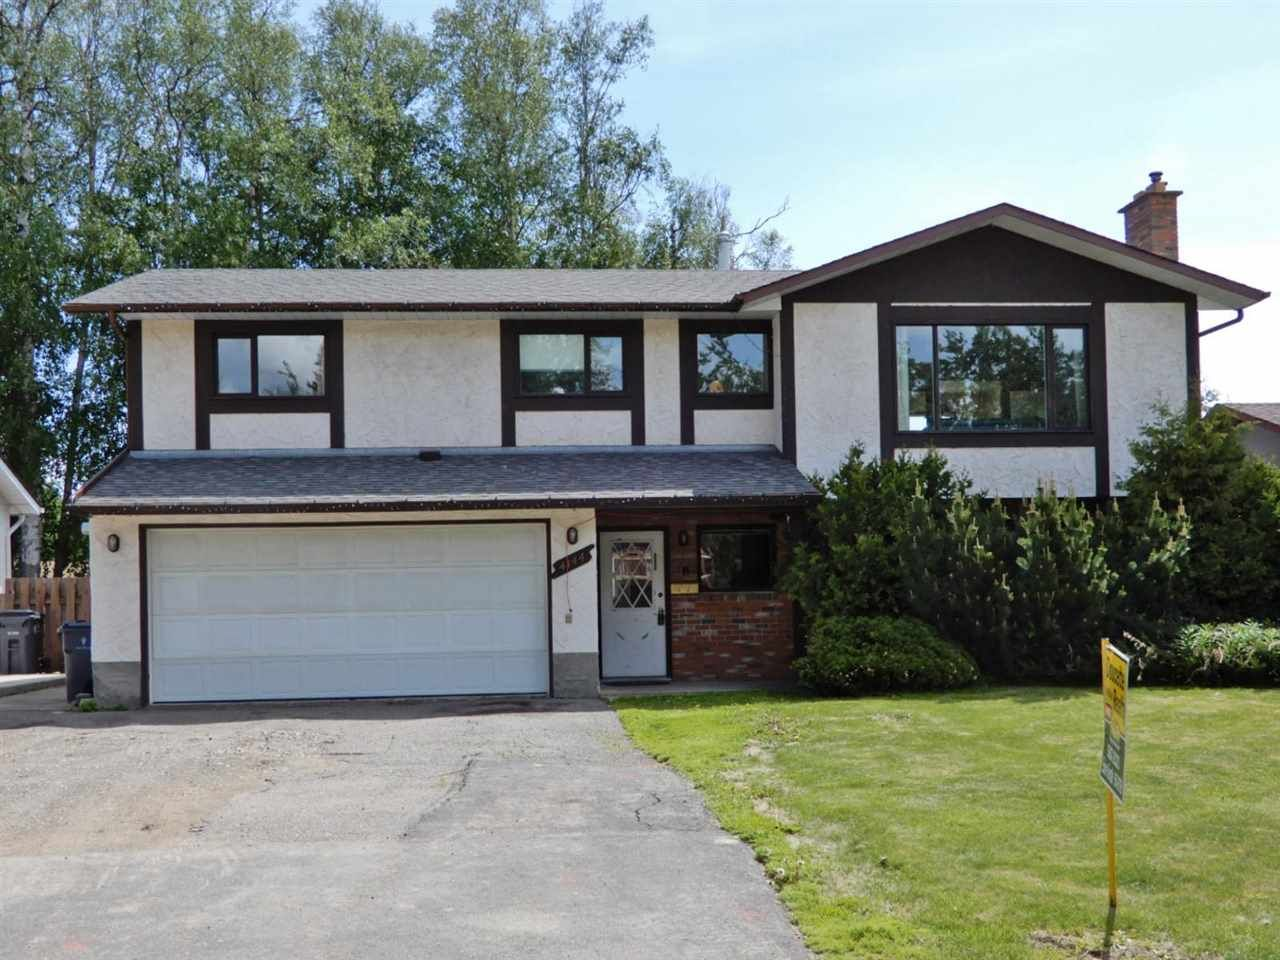 Main Photo: 4144 BAKER ROAD in : Charella/Starlane House for sale : MLS®# R2276839